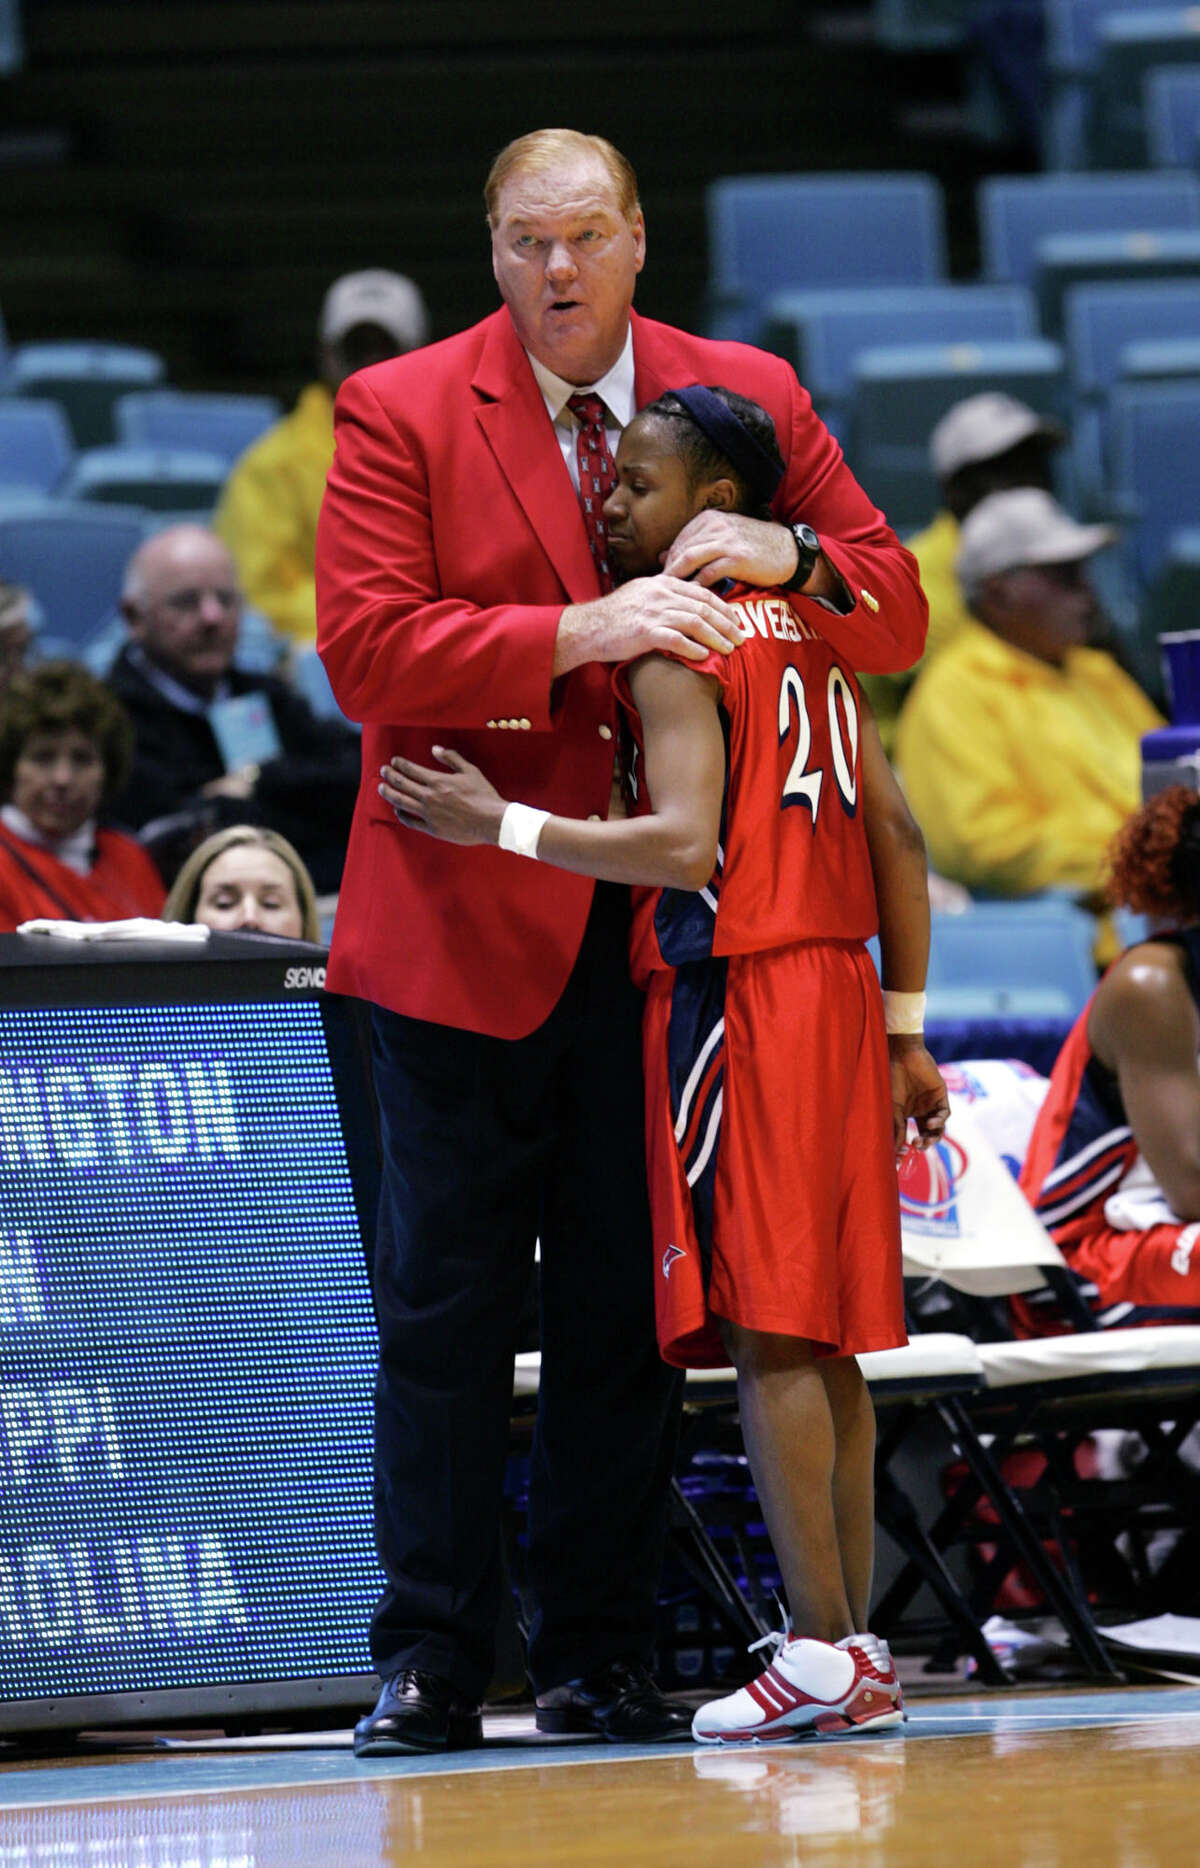 Houston coach Joe Curl consoles Joann Overstreet (20) near the end of their 63-43 loss to Boston College in the first round of the Women's NCAA tournament Sunday, March 20, 2005, in Chapel Hill, N.C. (AP Photo/Gerry Broome) HOUCHRON CAPTION (03/21/2005) SECSPTS: BIG HEART: UH coach Joe Curl consoles Joann Overstreet.